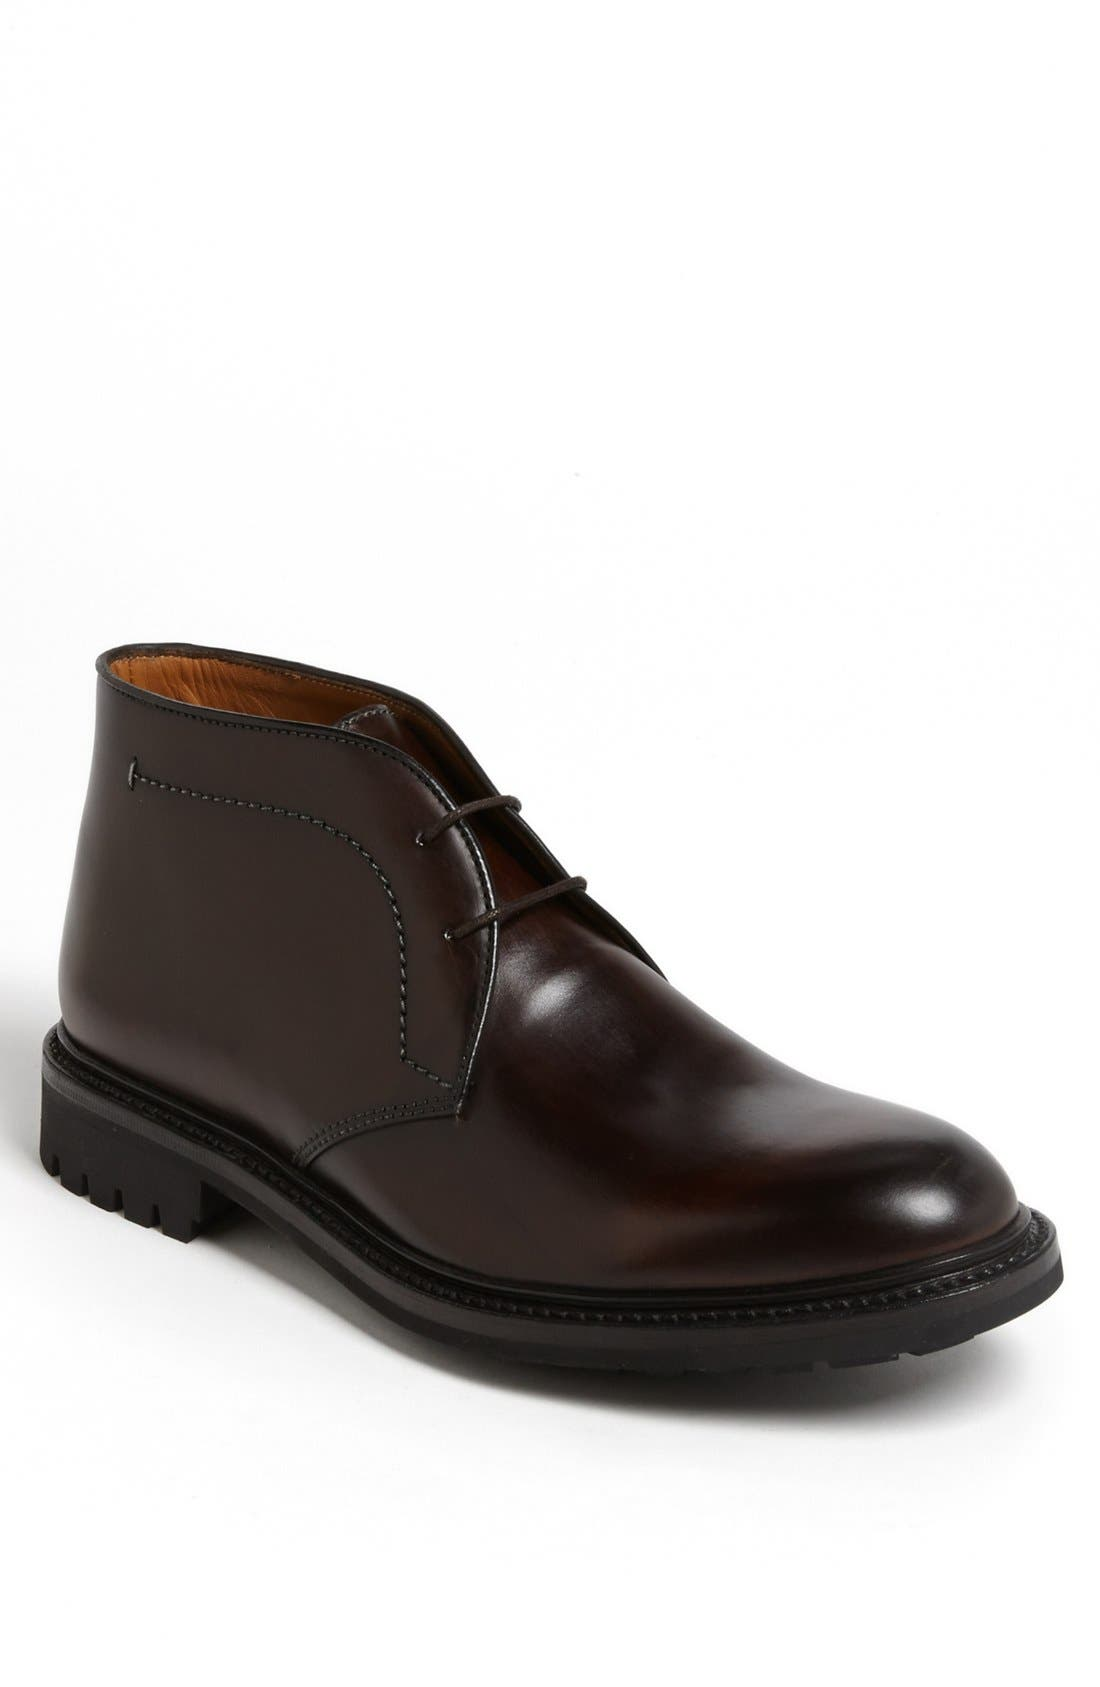 Alternate Image 1 Selected - Lottusse Leather Chukka Boot